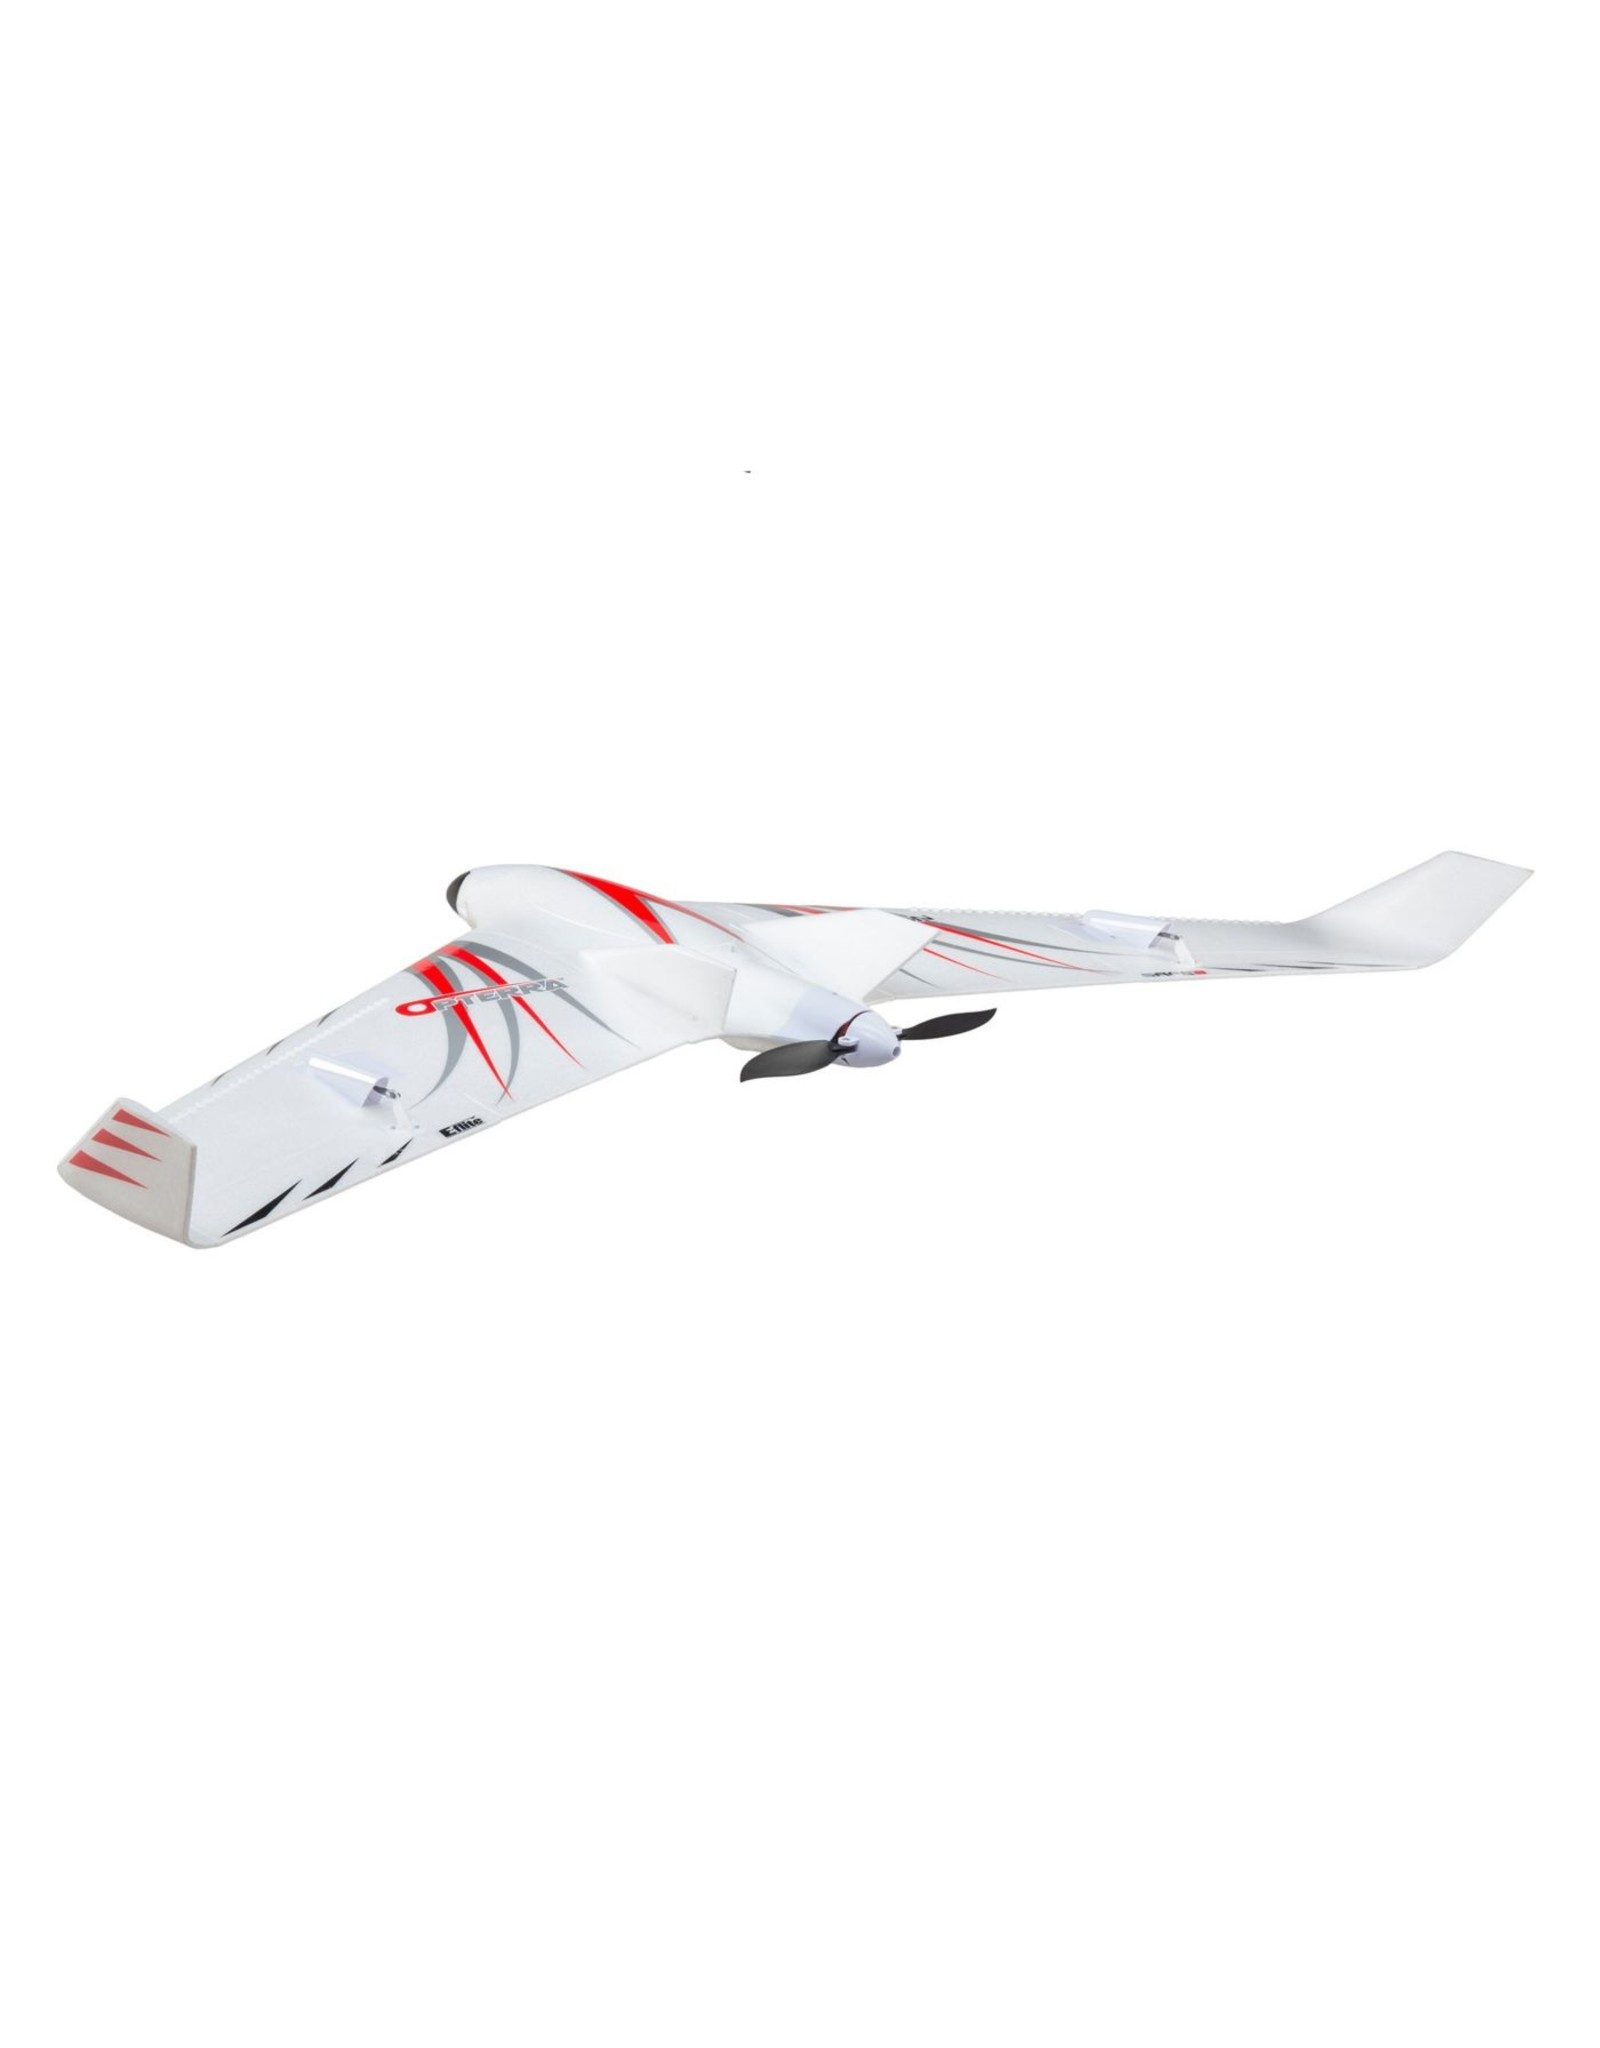 E-flite 11450 - Opterra 1.2m BNF Basic with AS3X and SAFE Select